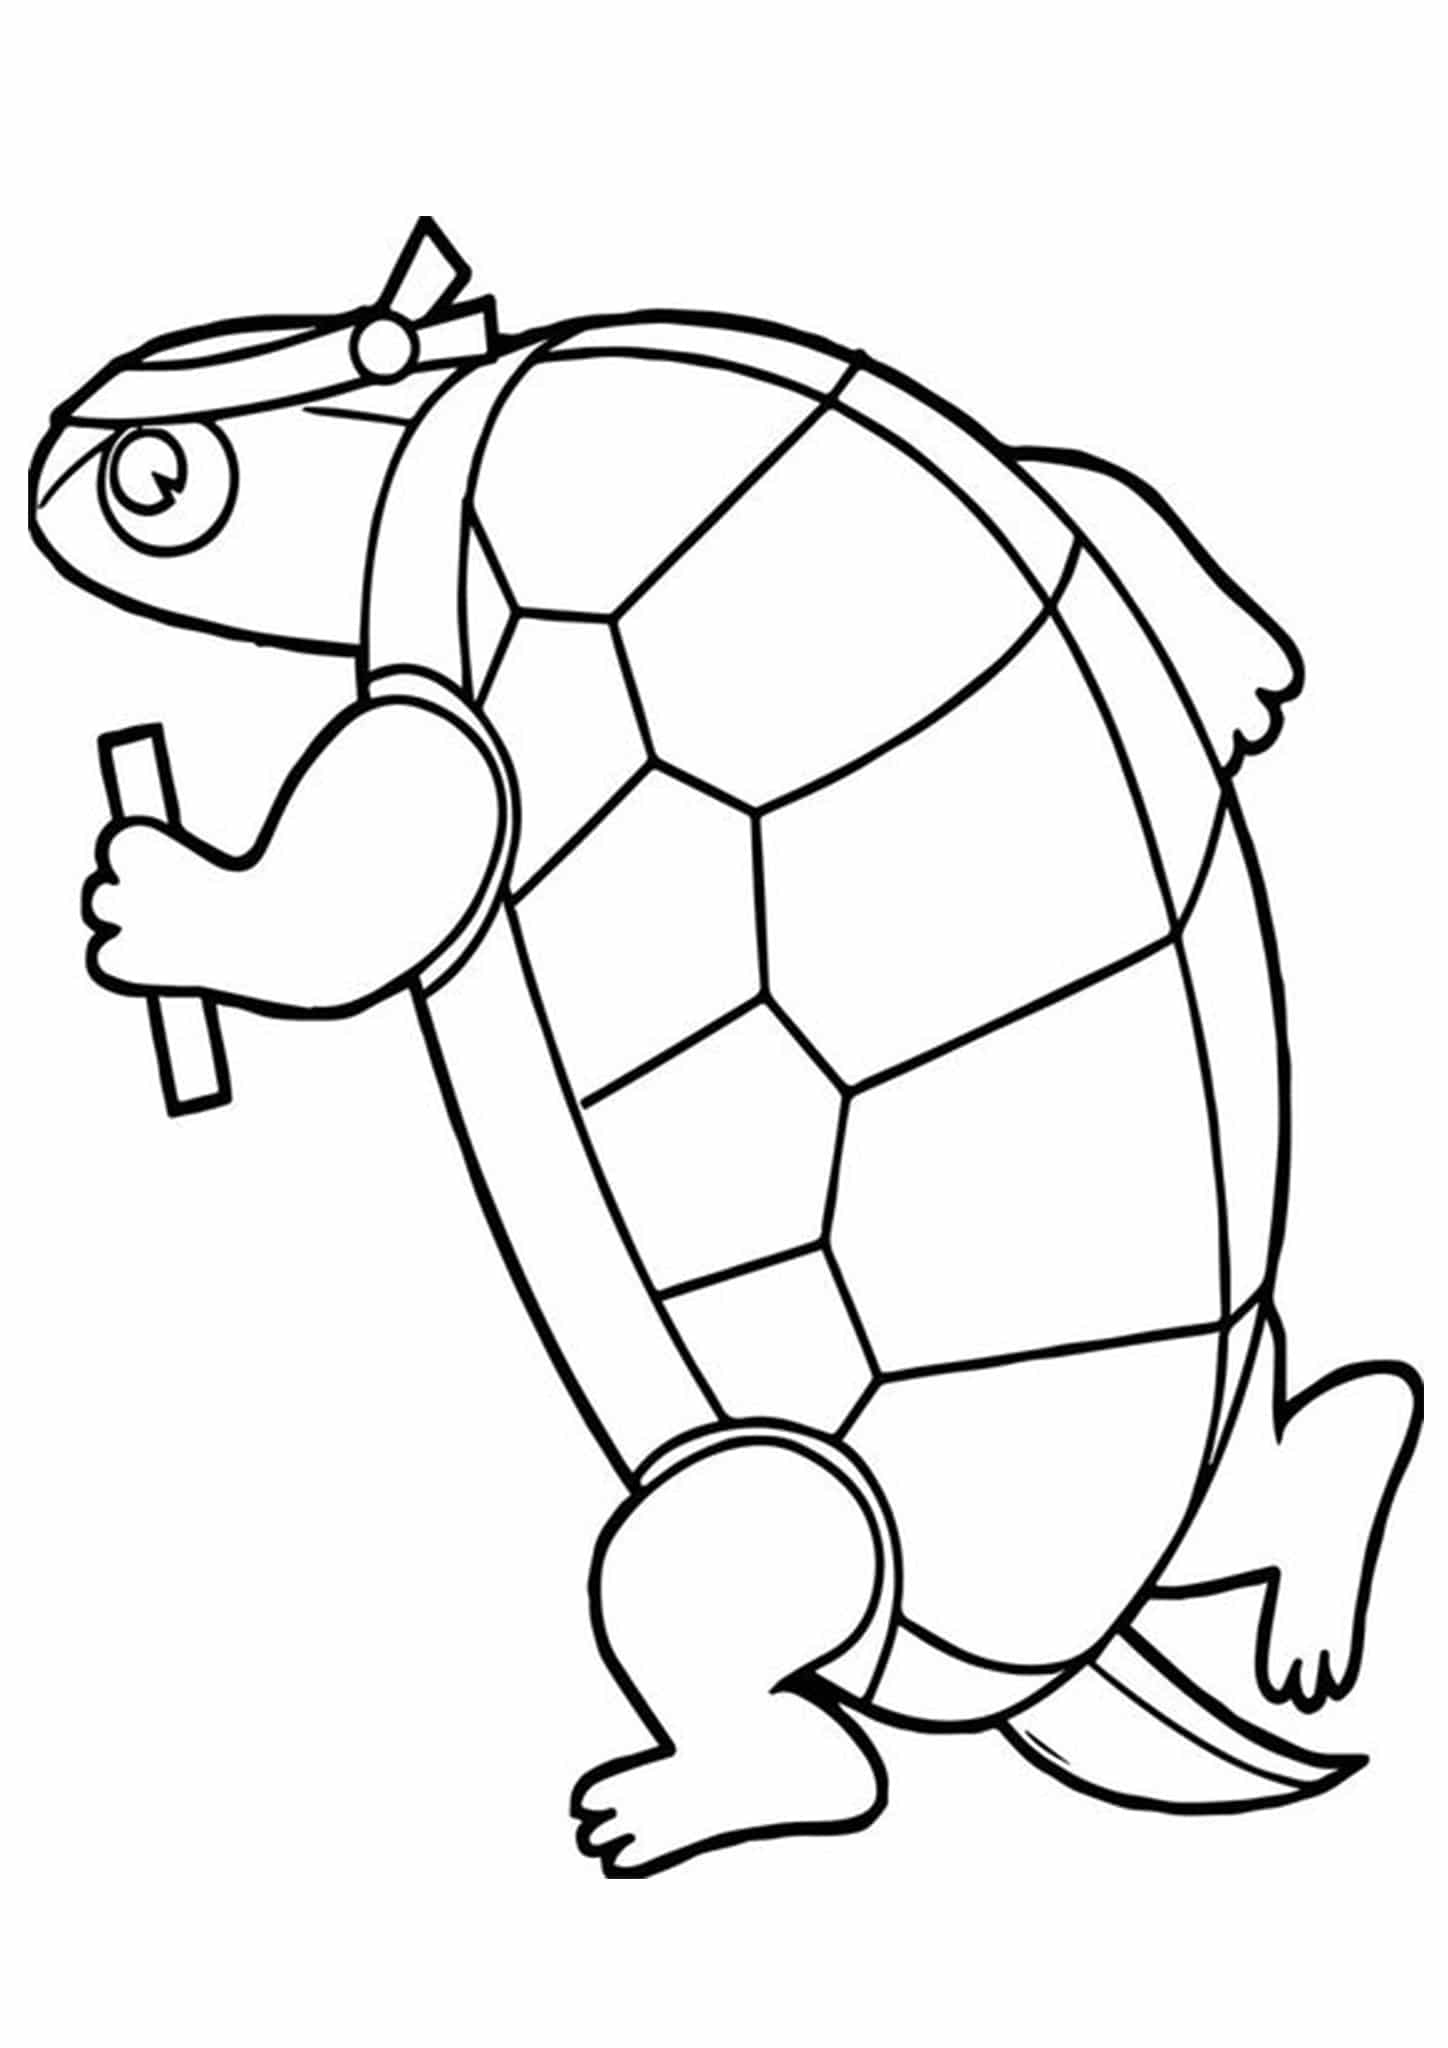 images of turtles to color detailed turtle coloring pages at getdrawings free download to color turtles of images